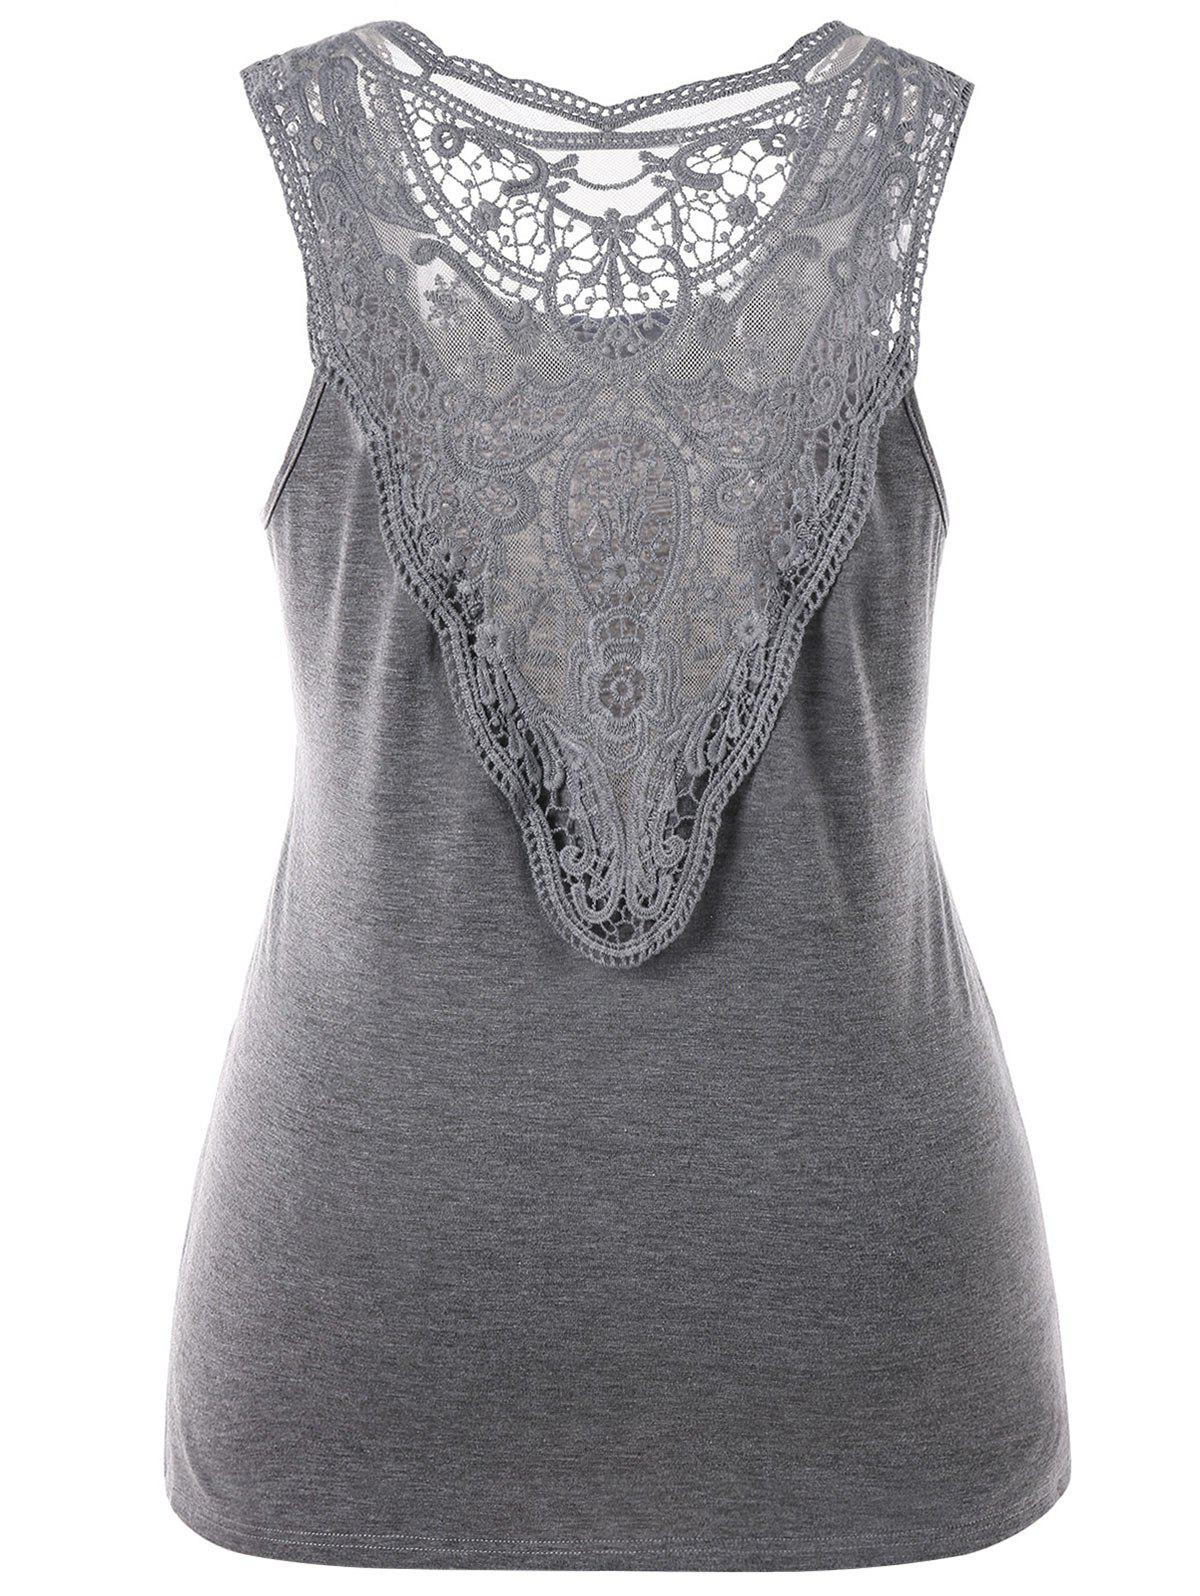 Plus Size Back Sheer Lace Top - GRAY 4XL